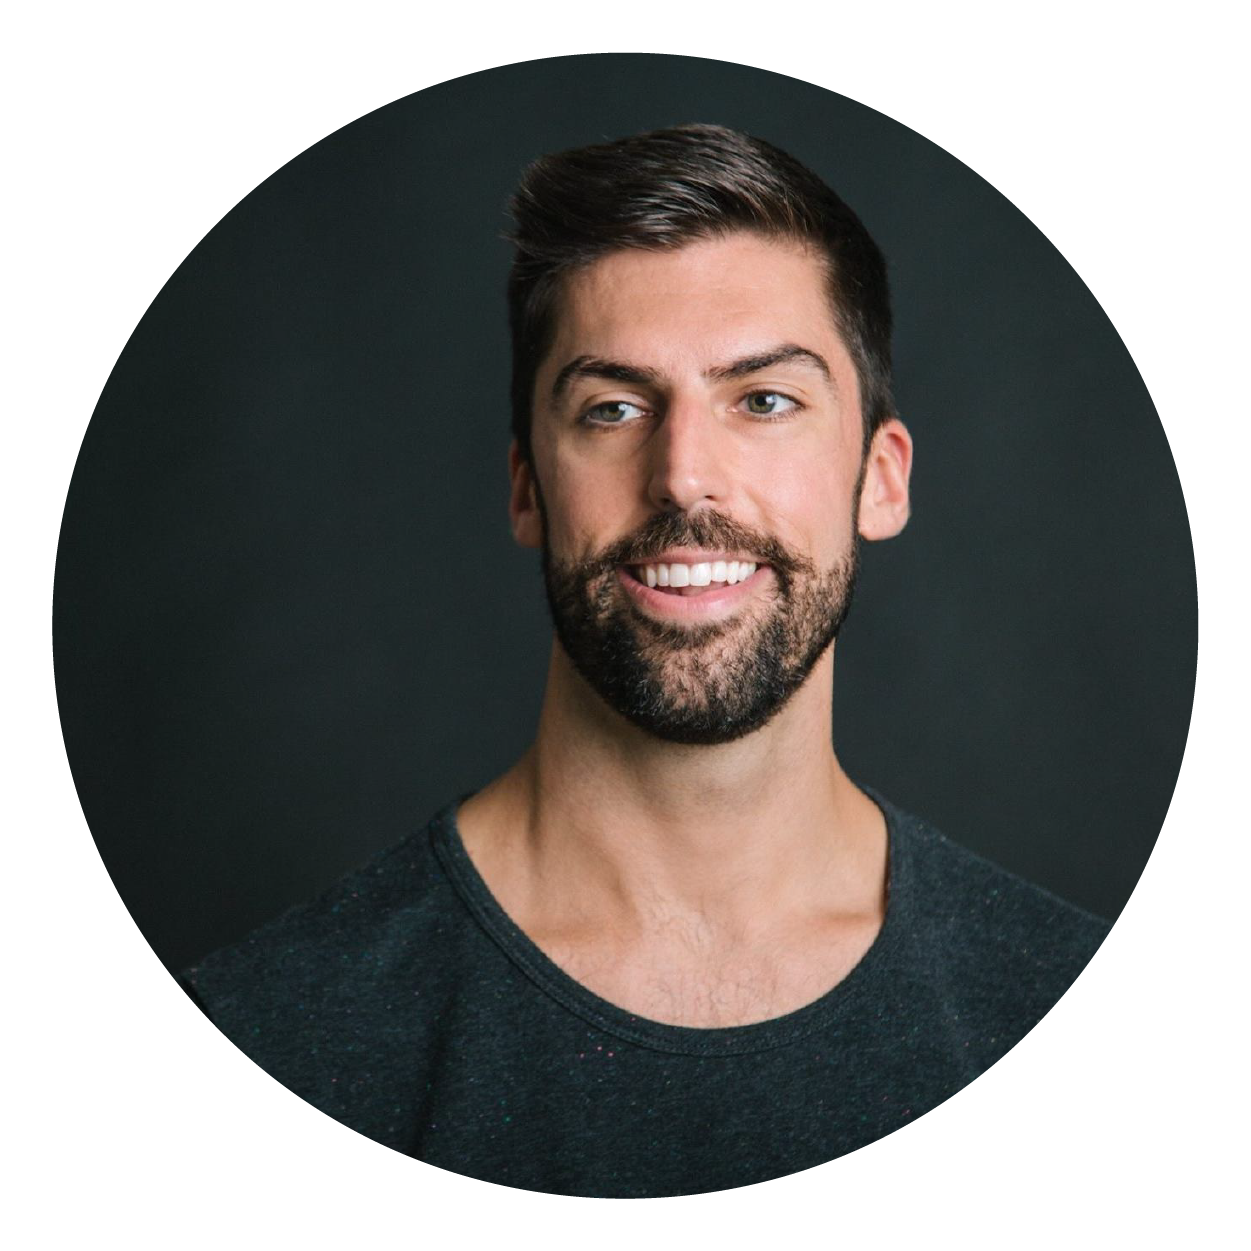 Dan Ragan - Founder + Lead Strategist